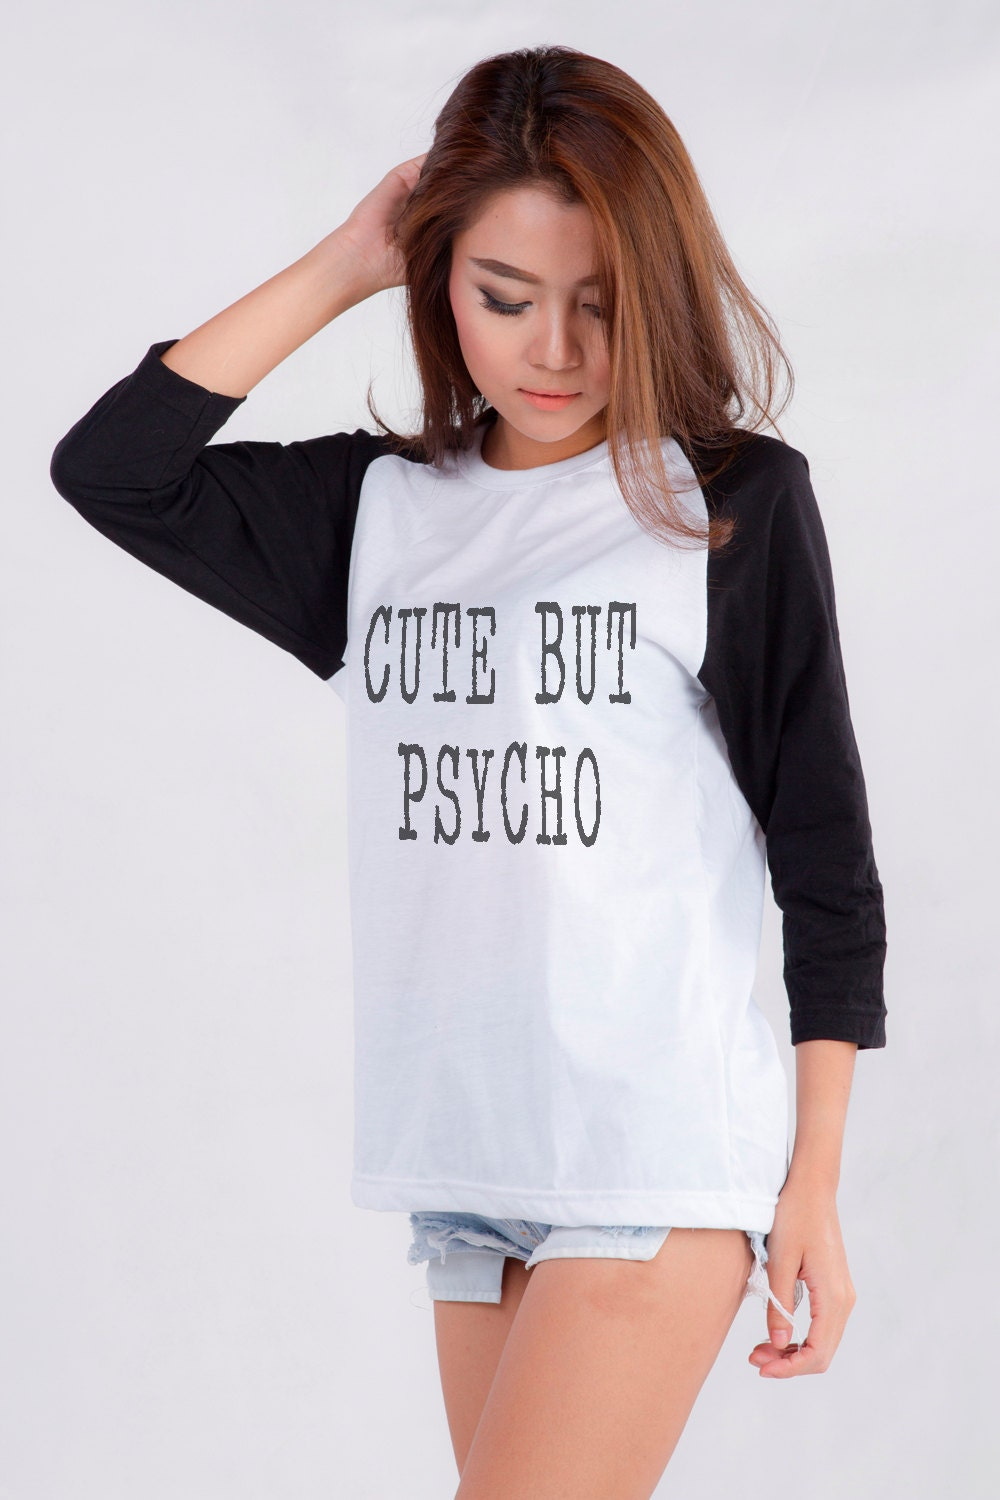 Cute But Psycho funny tshirts graphic tee women Baseball